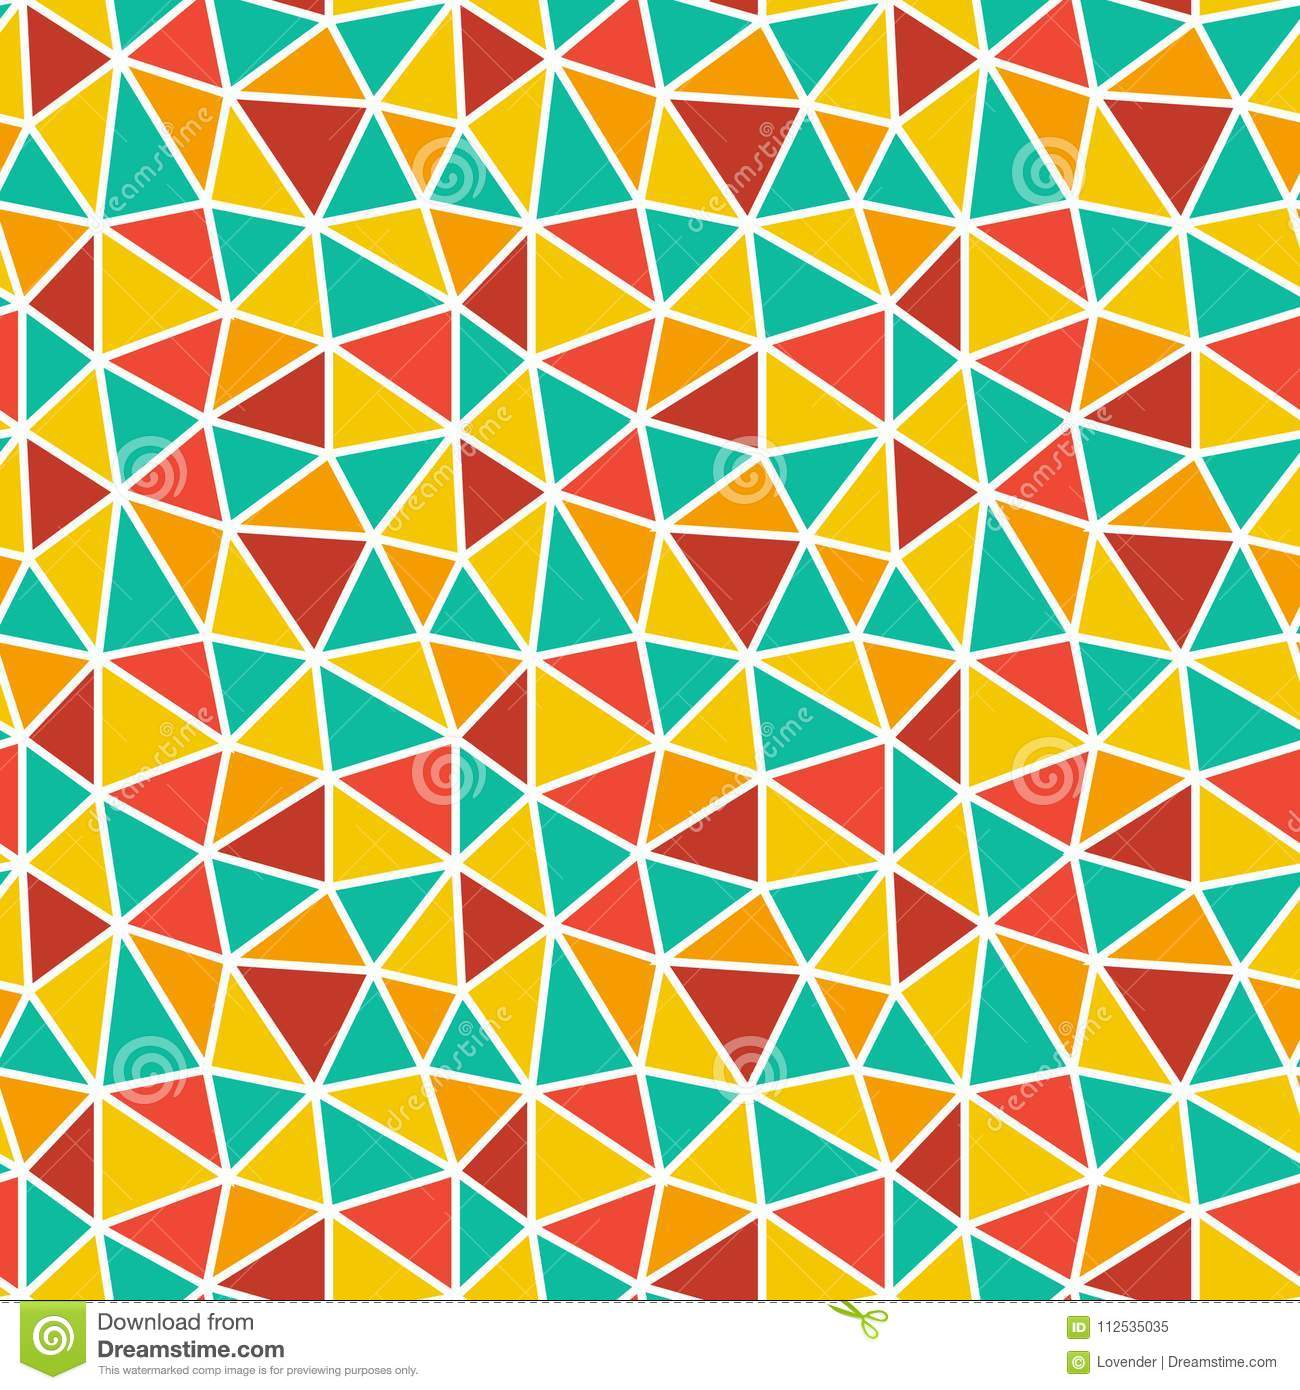 Low poly bright mosaic pattern. Seamless vector background